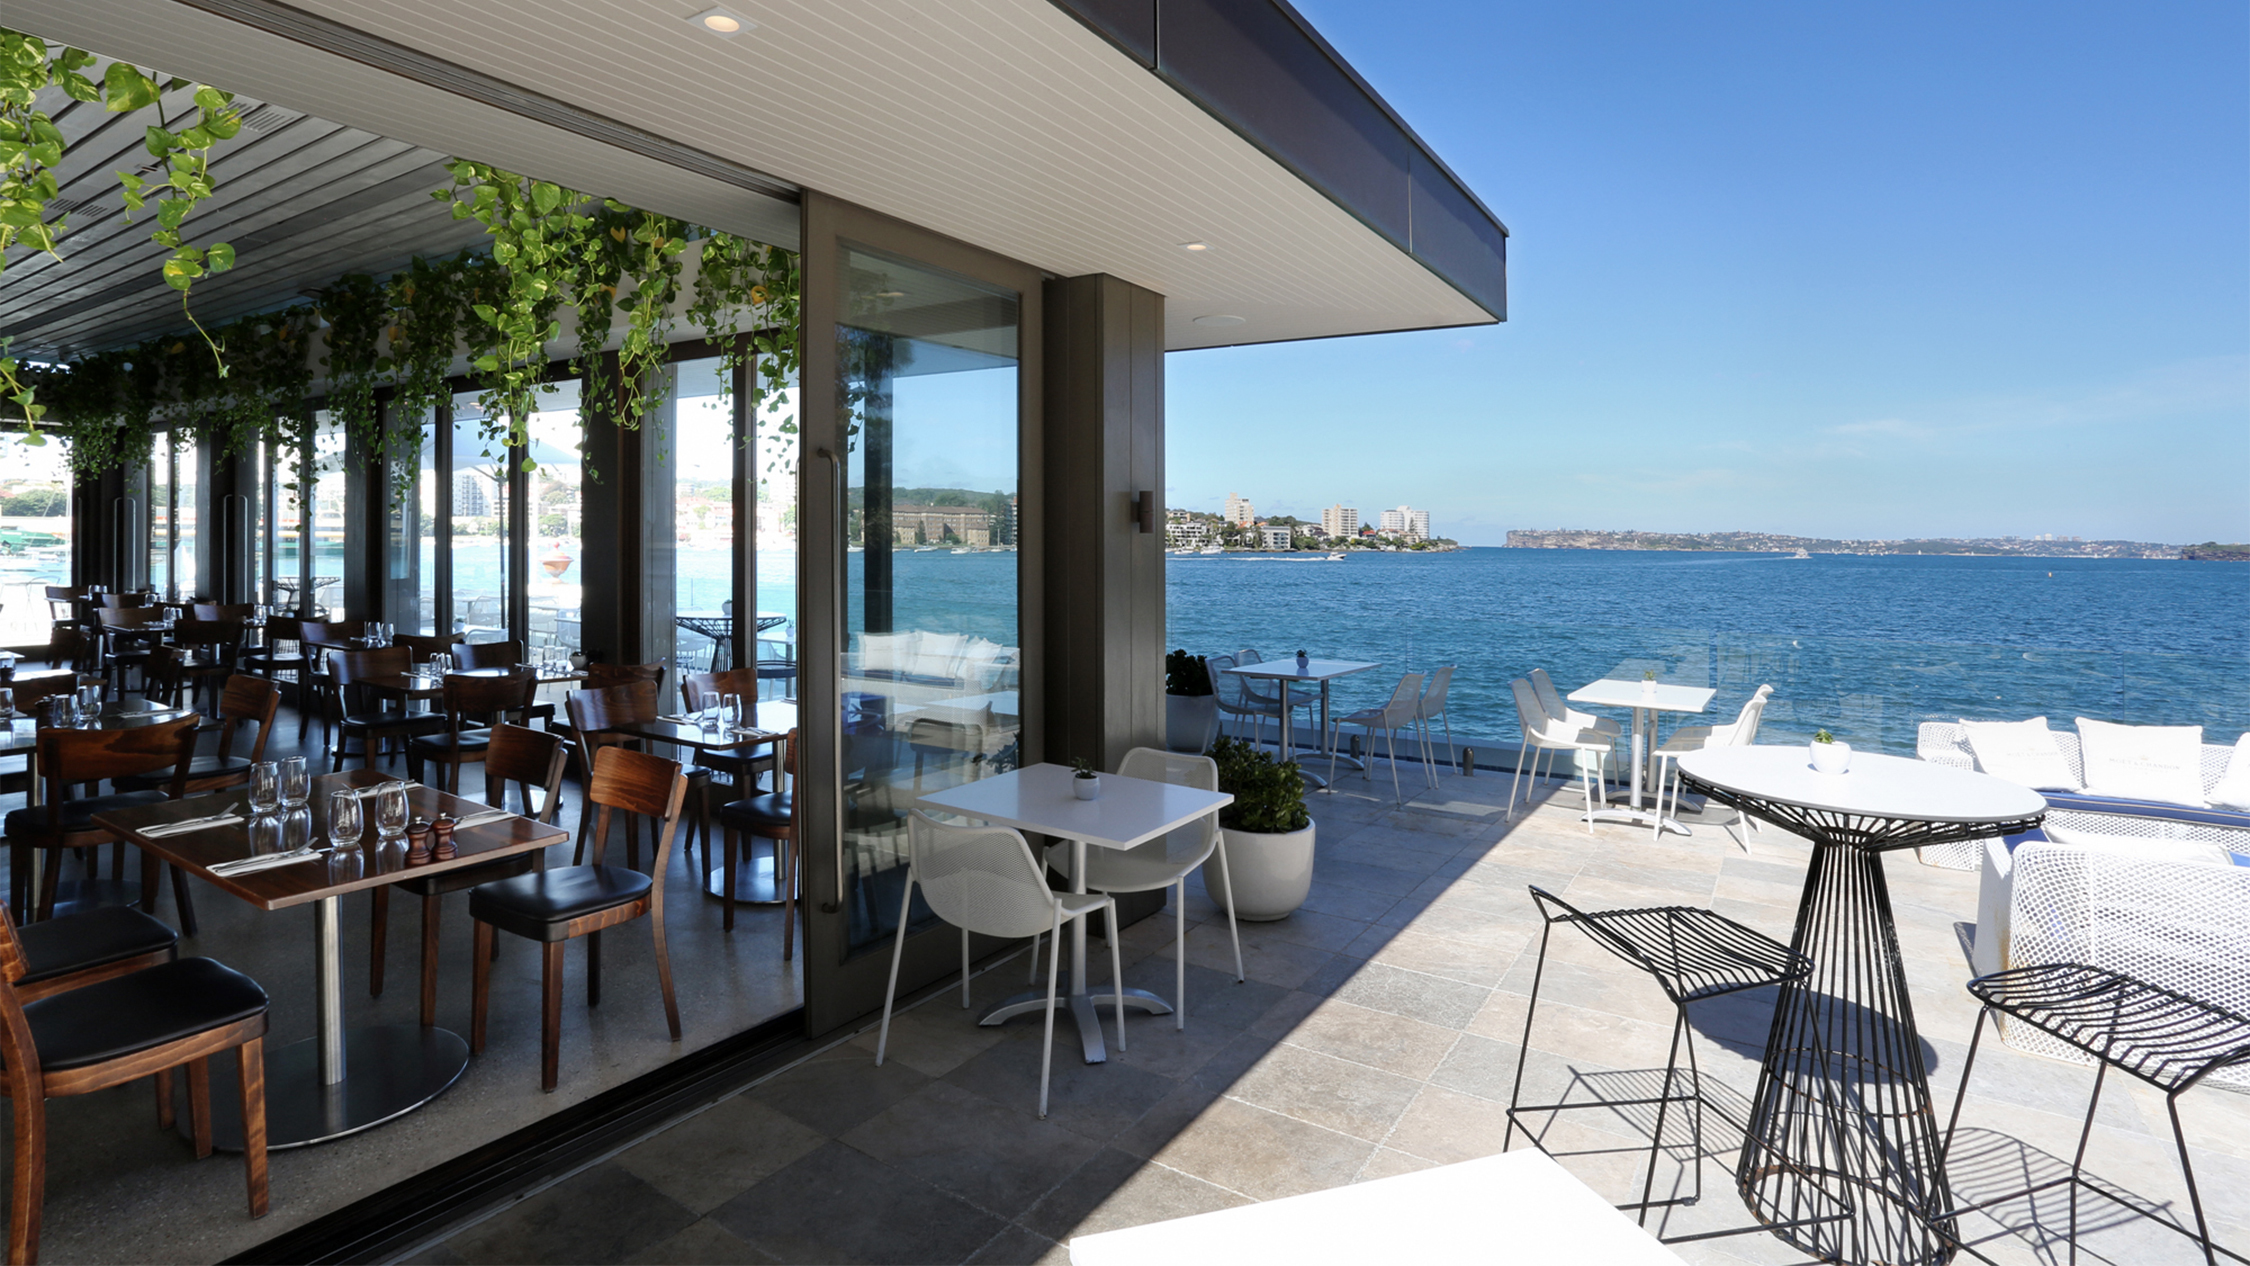 Exterior view of water 1 at Manly Pavilion